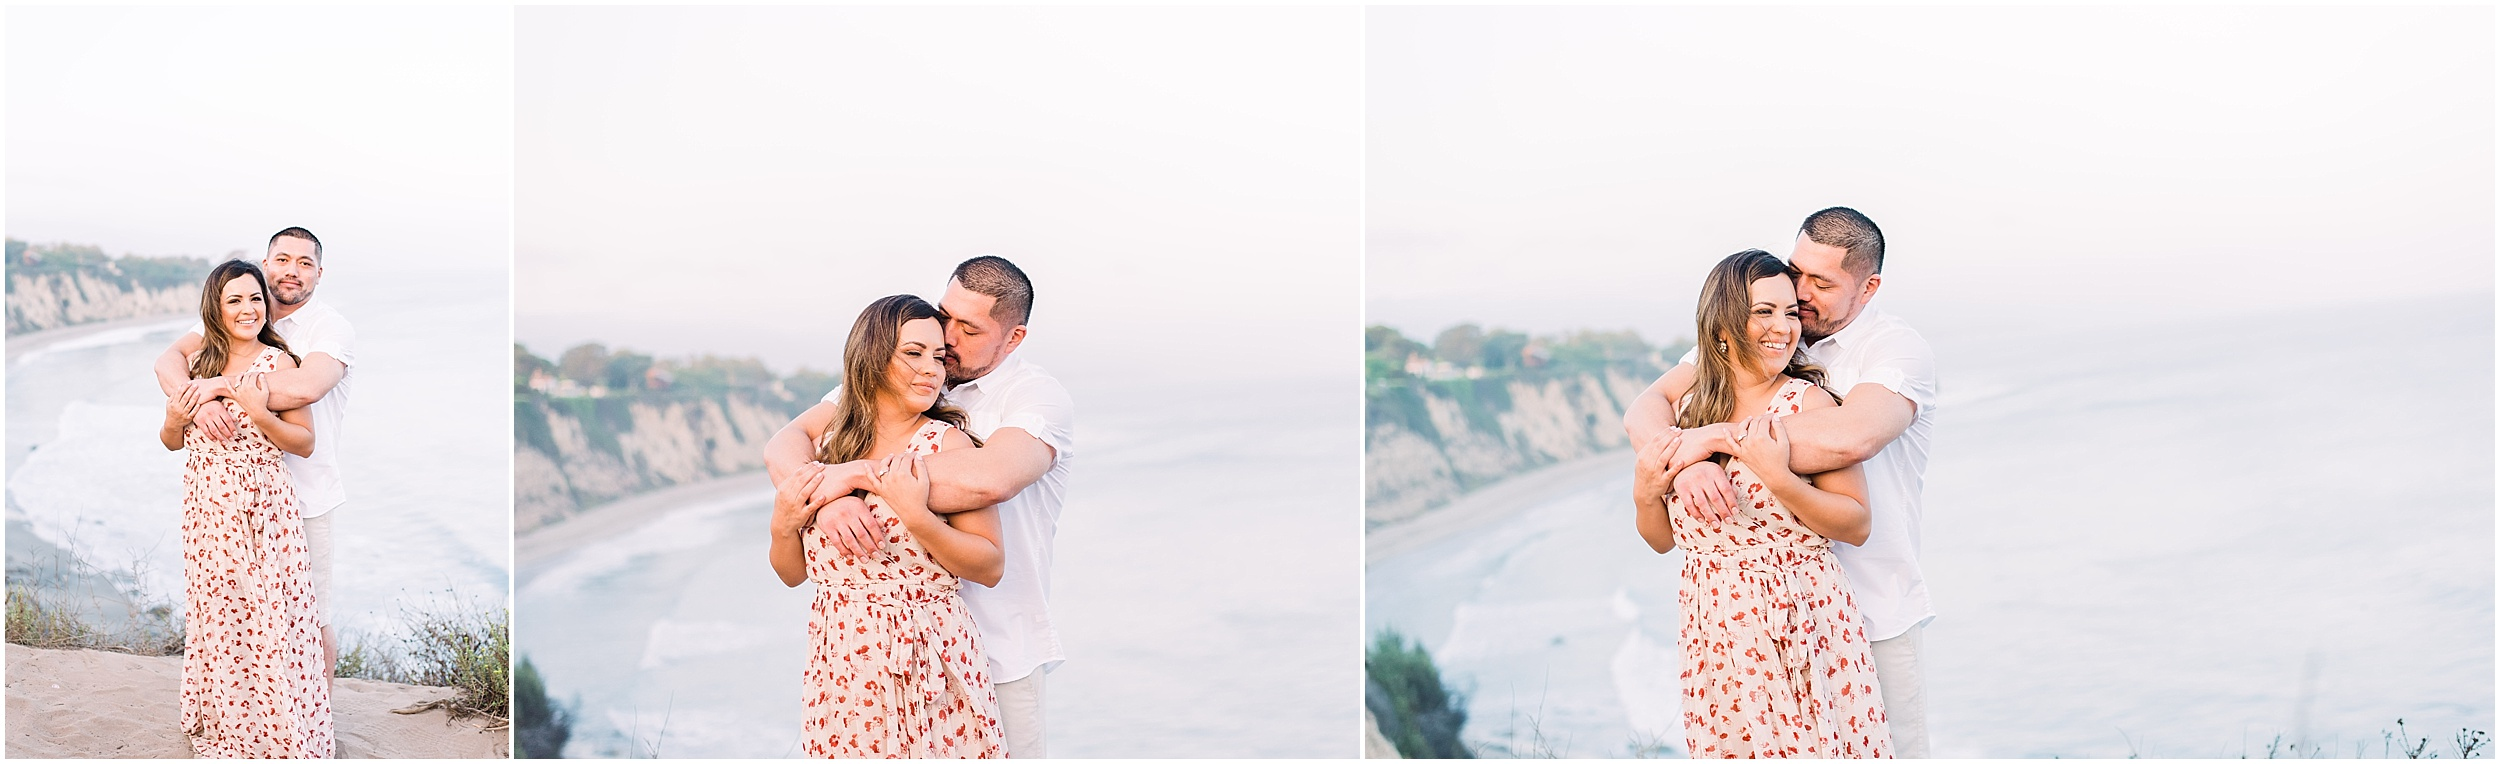 Engagement-Session-in-Malibu-California-Valeria-Gonzalez-Photography-Wedding-and-Portrait-Photographer-Richmond-Virginia-Ventura-California_0007.jpg